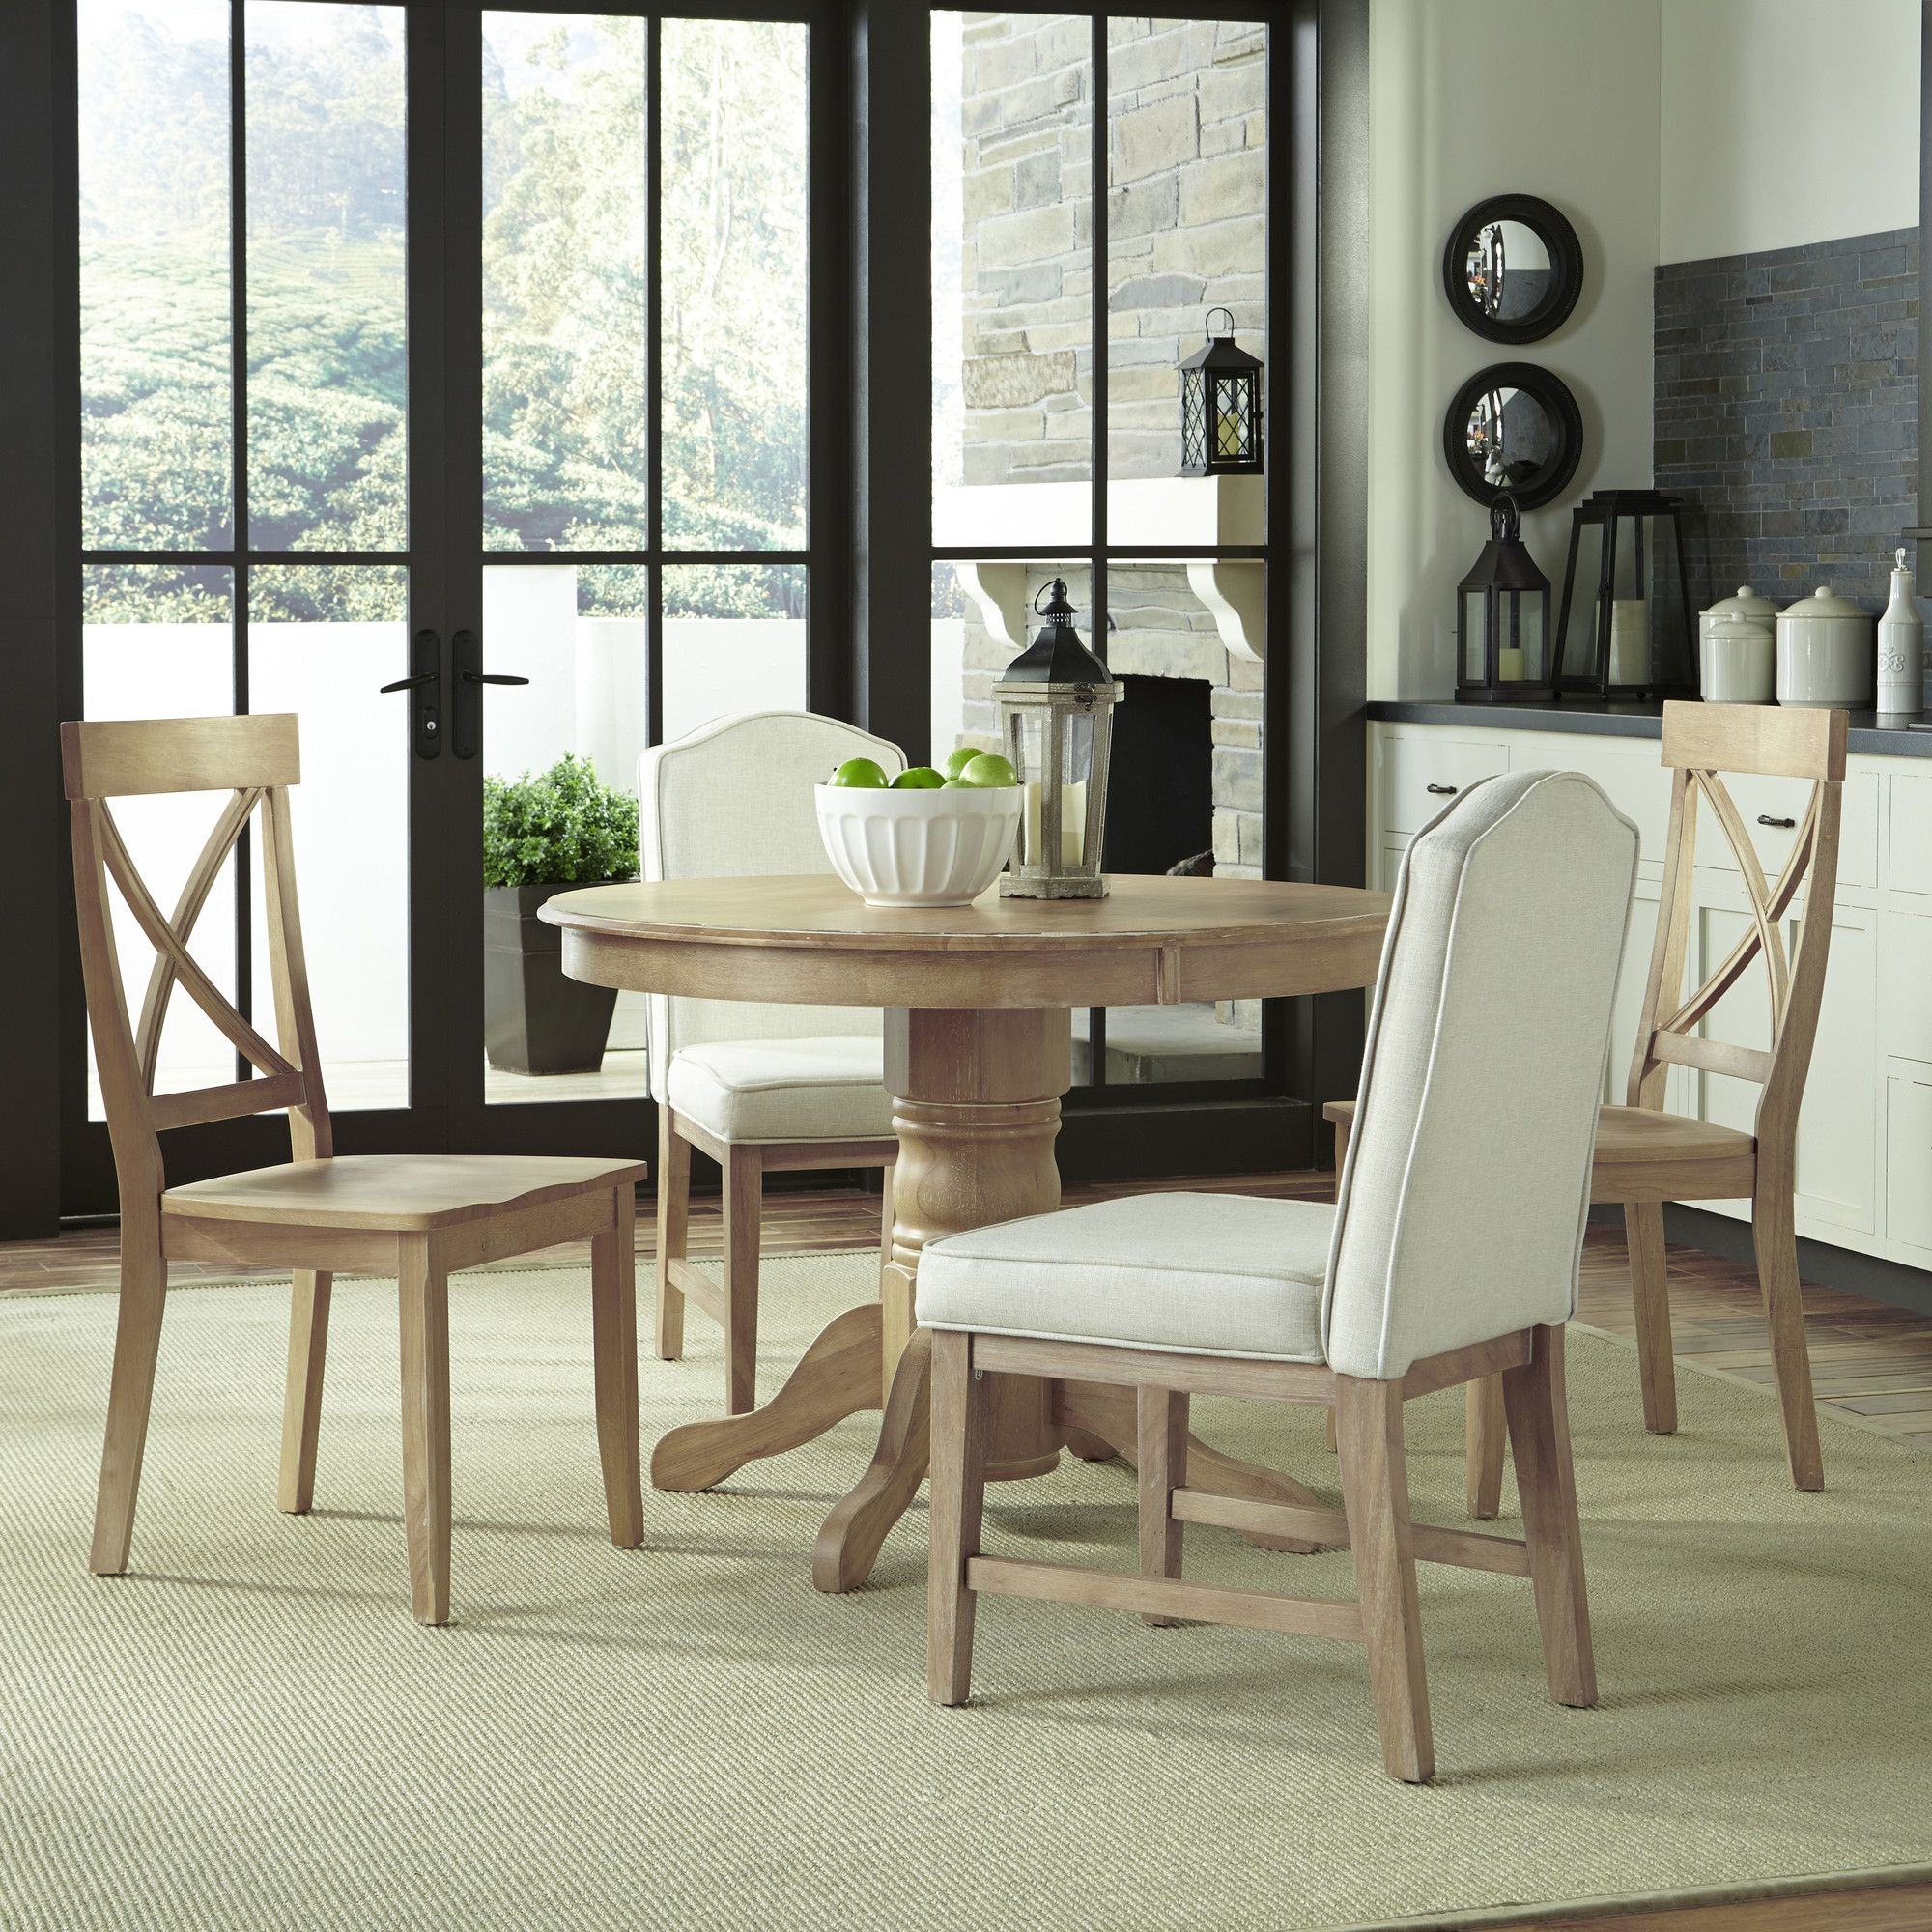 Purnell 5 Piece Dining Set Reviews